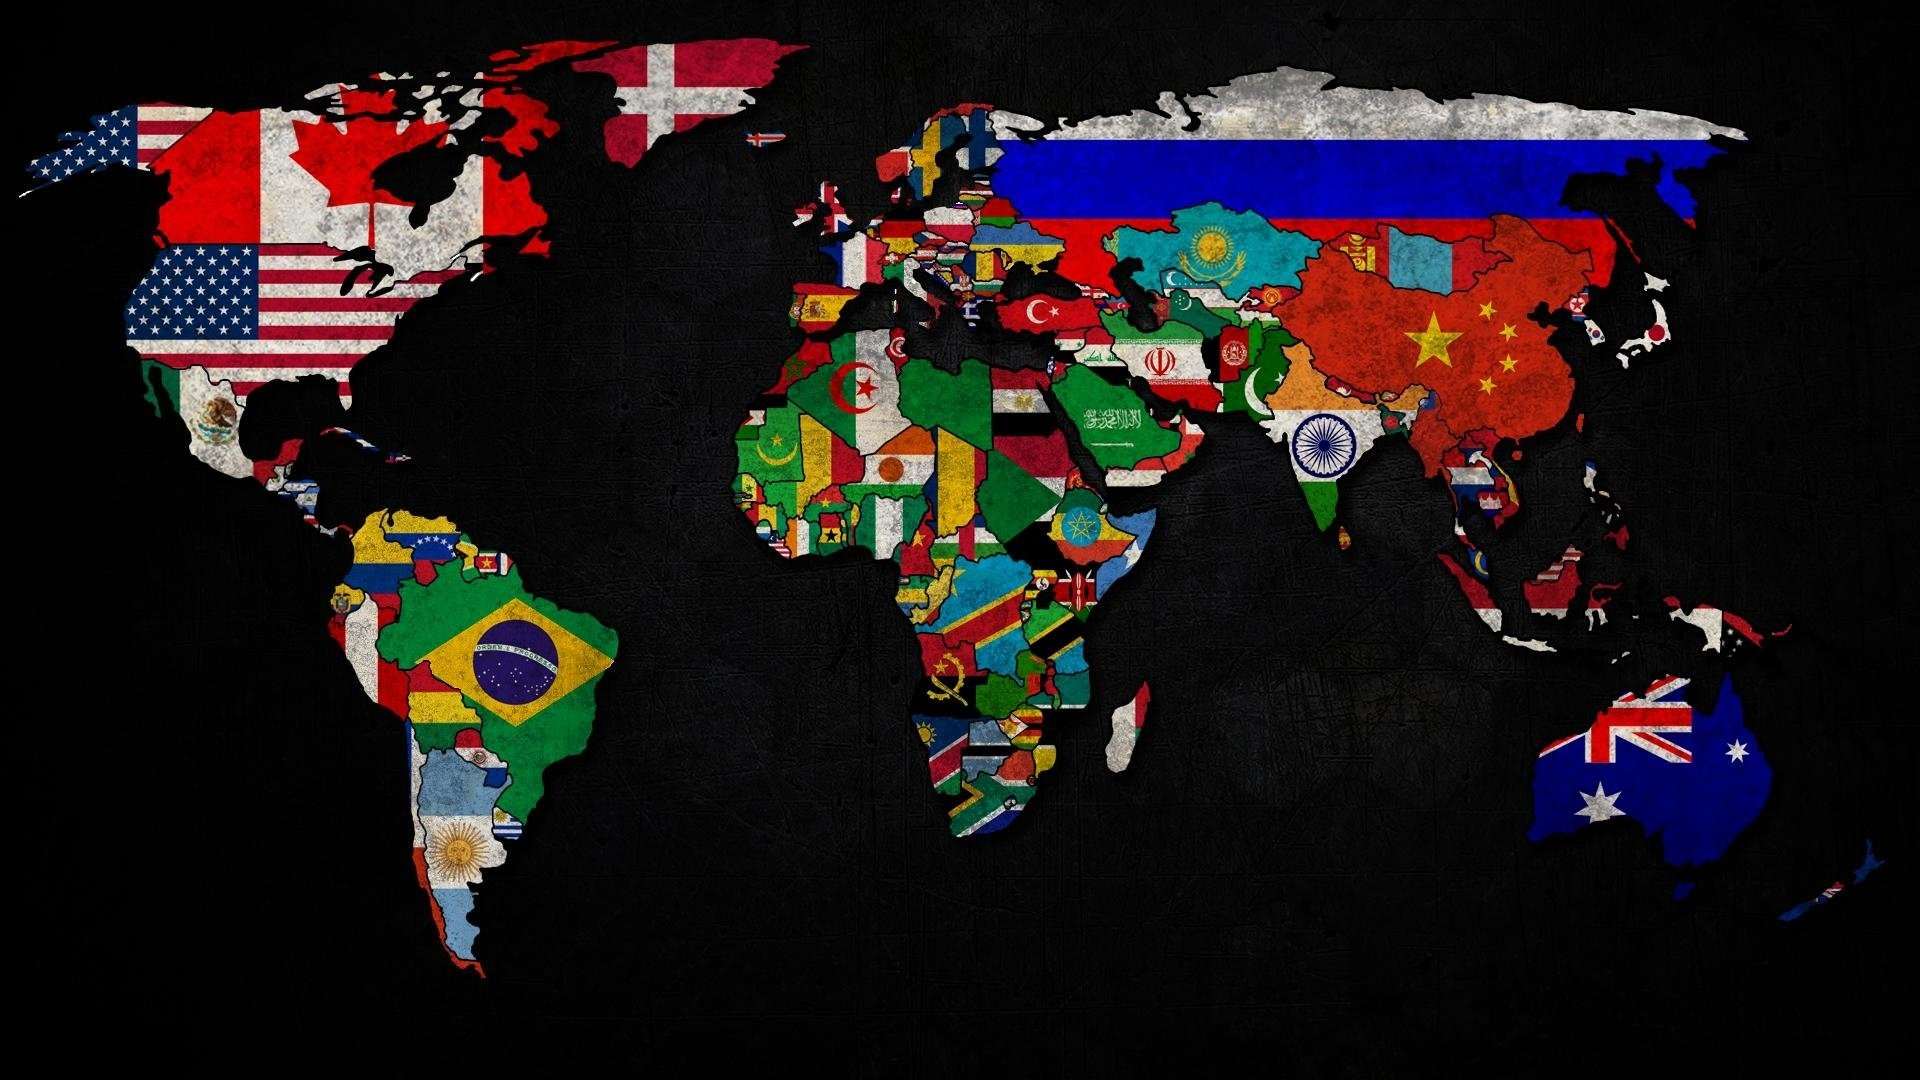 World map computer wallpaper 62 images download 1920x1080 hd wallpaper background id400645 1920x1080 misc world map gumiabroncs Gallery